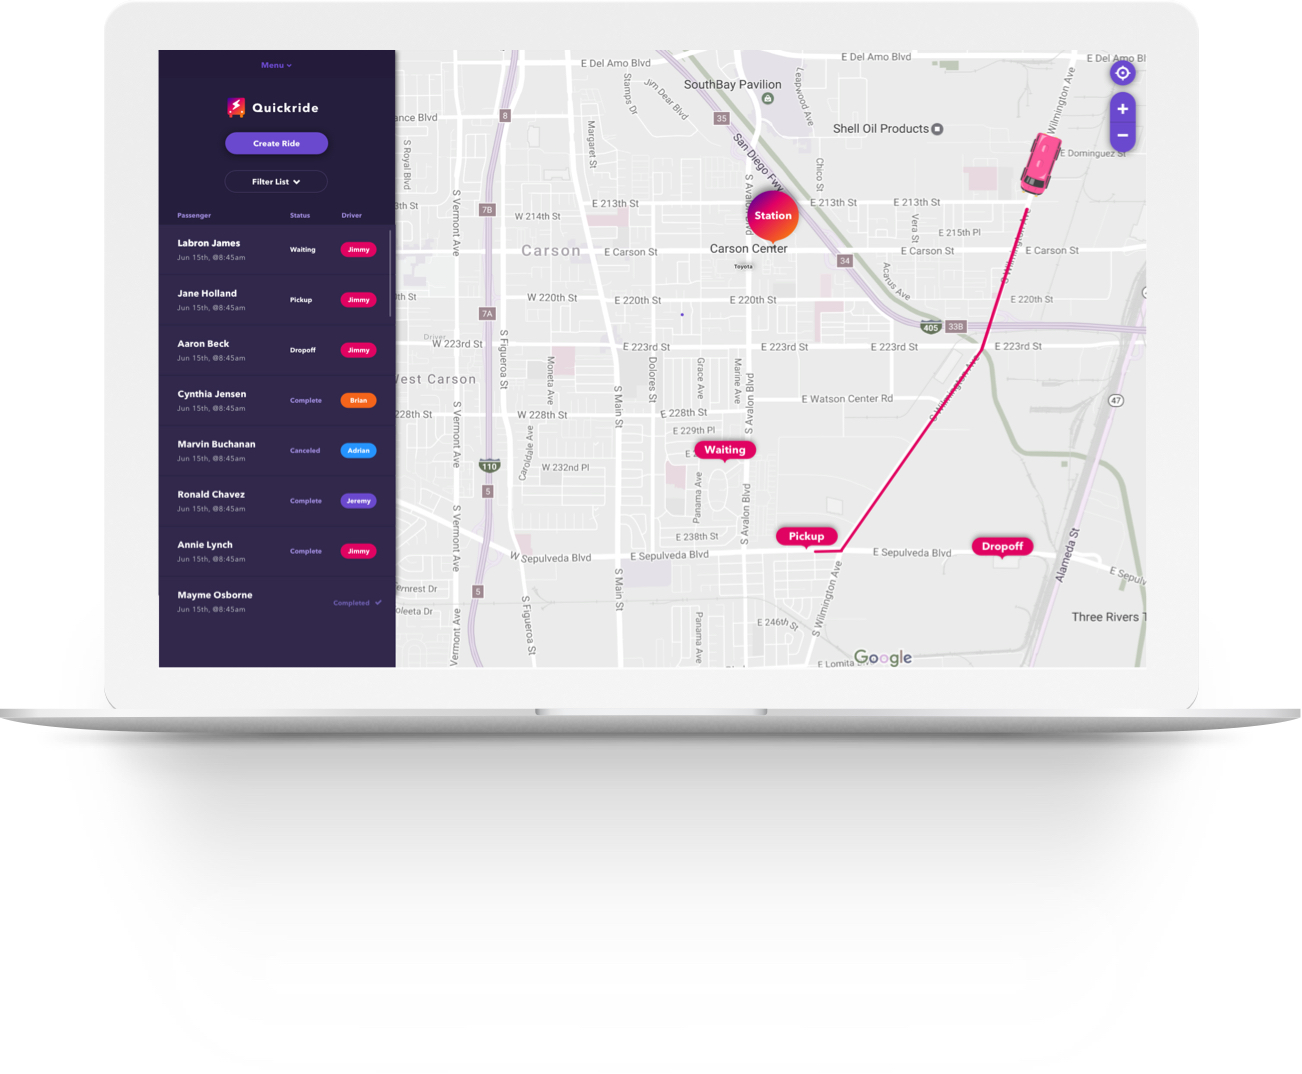 Quickride - Shuttle Service App for Service Directors and